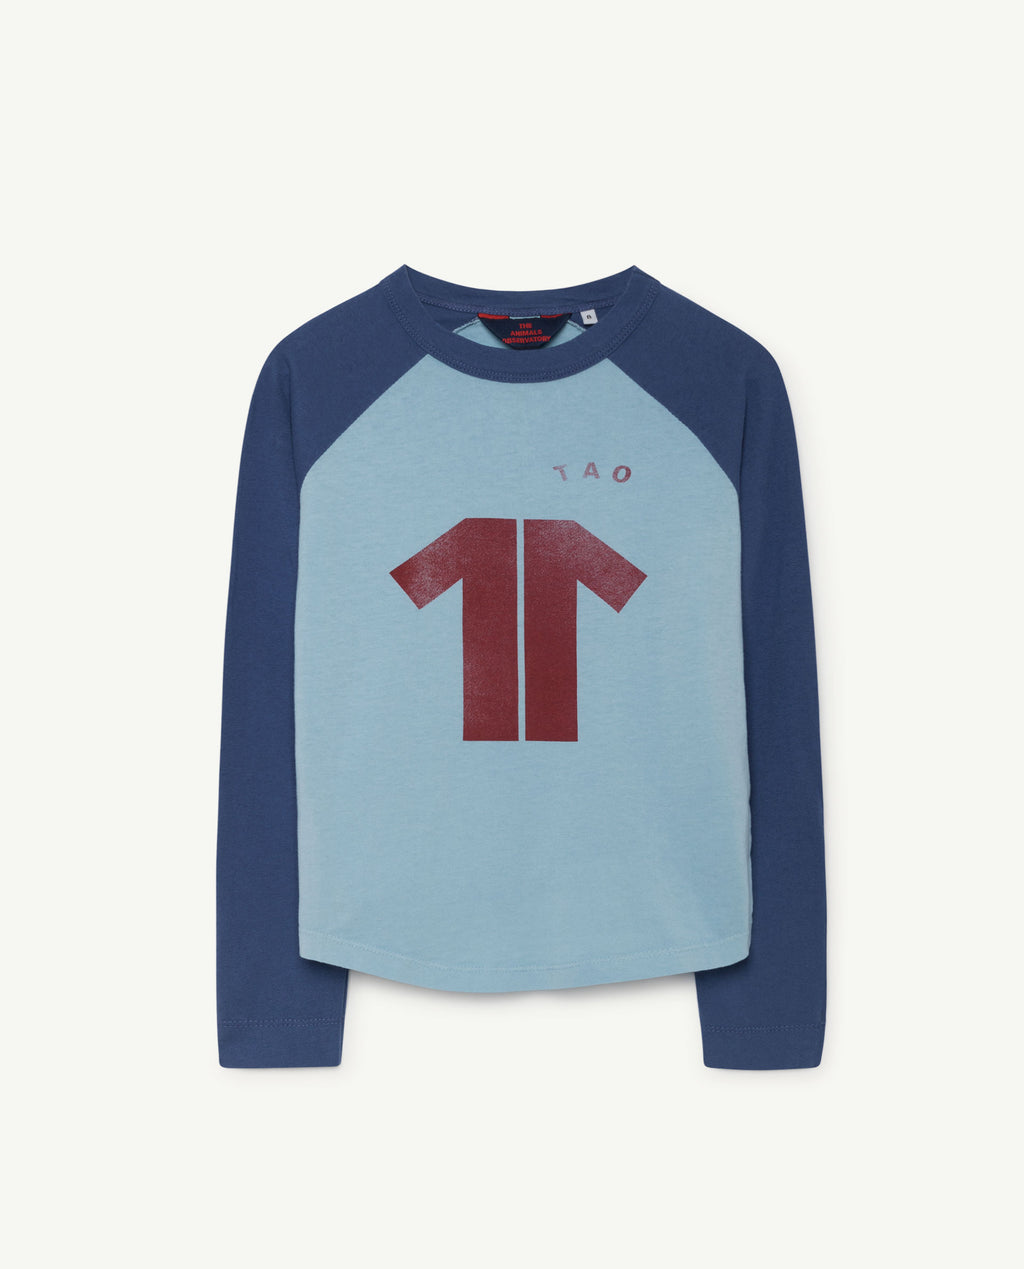 The Animals Observatory Cricket T-Shirt - Blue/MaroonTao